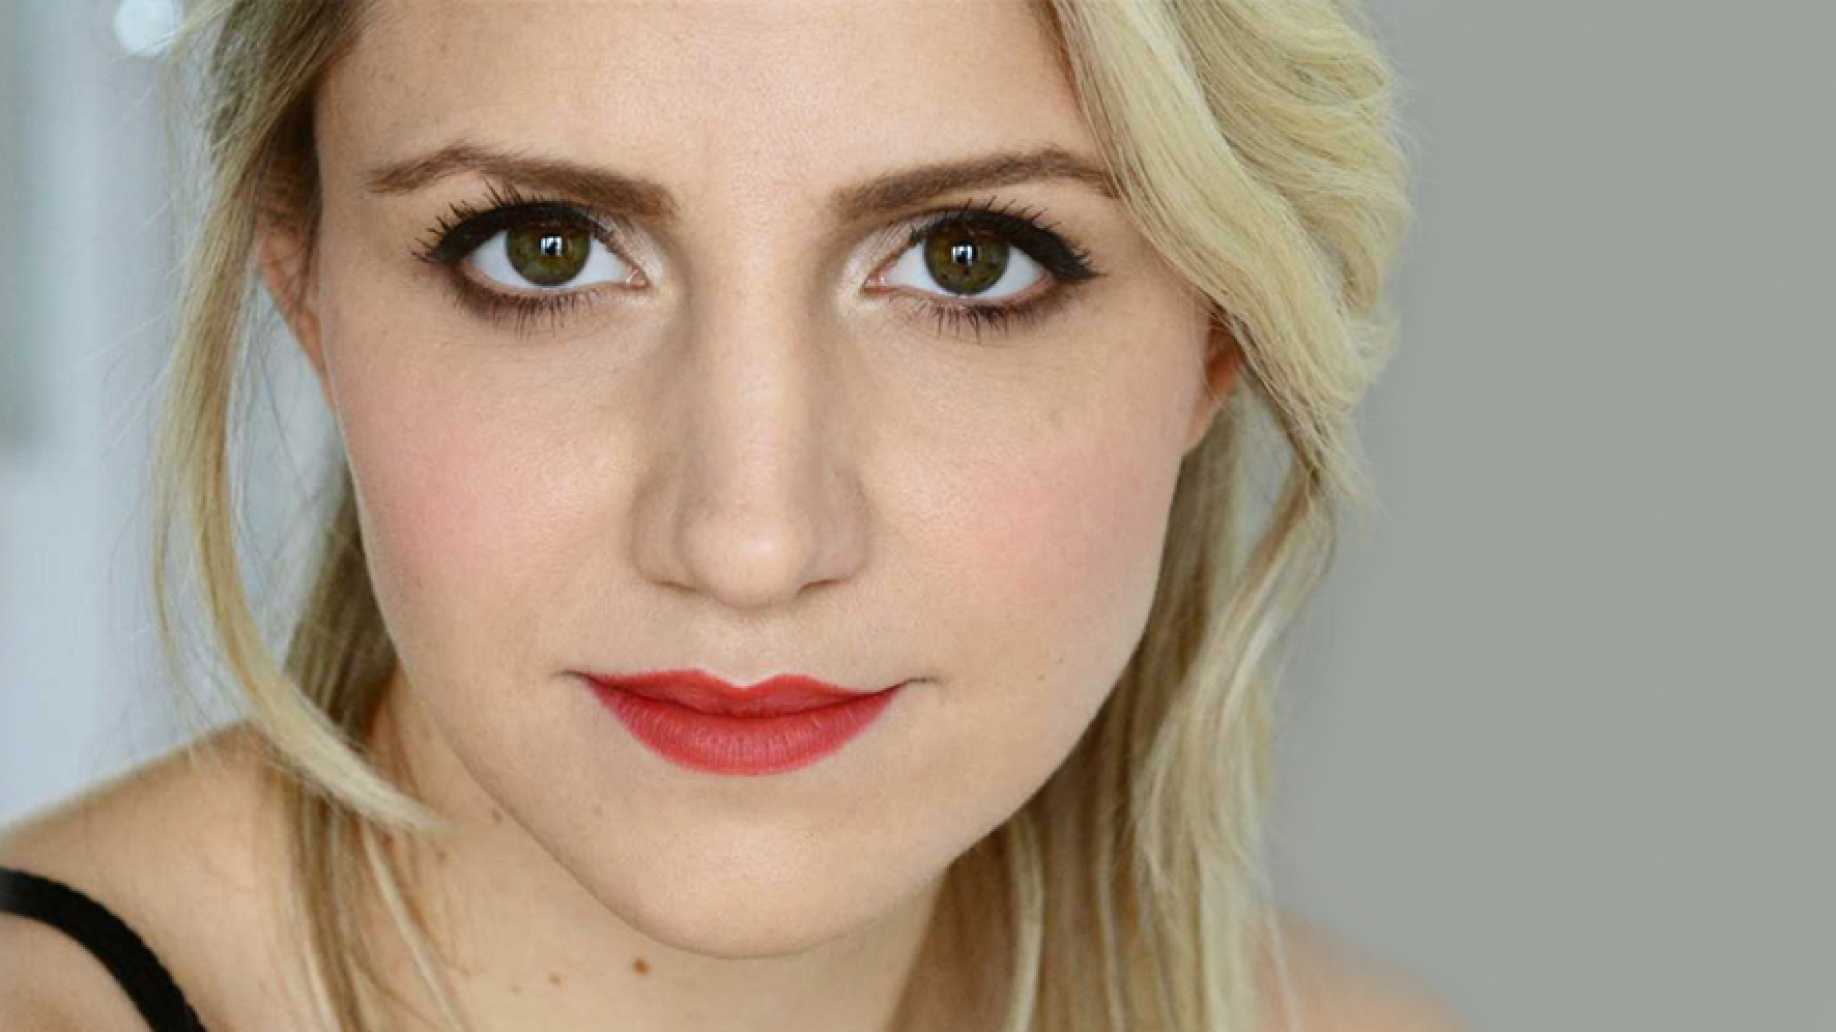 Annaleigh Ashford Tuesday, December 18 at 7:30 & 9:30 pm